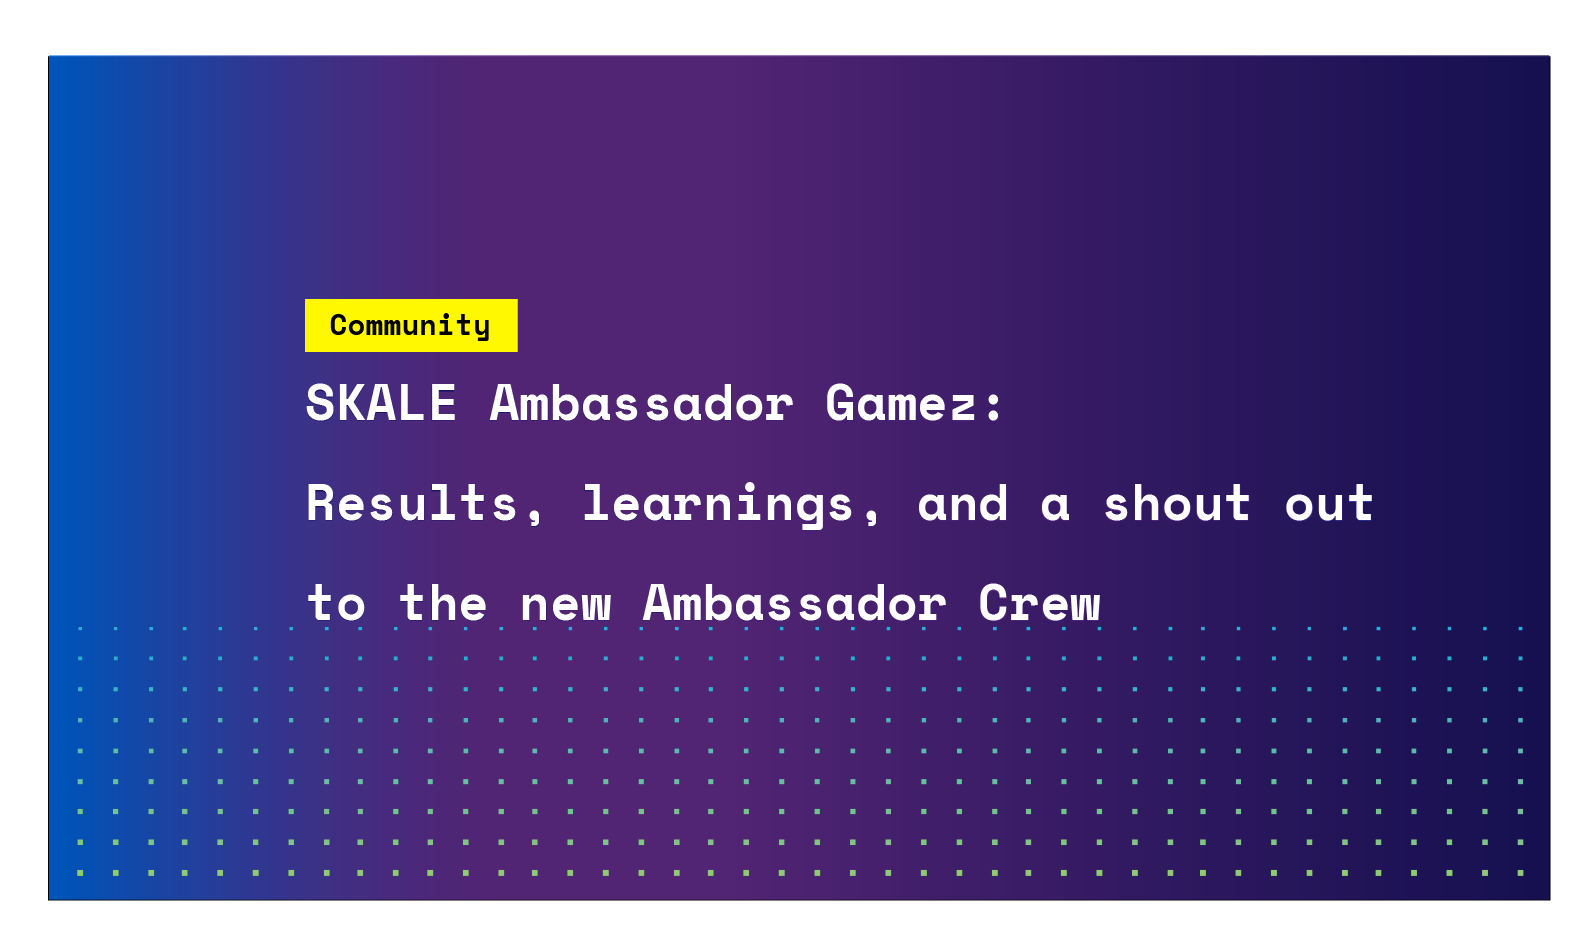 SKALE Ambassador Gamez: Results, learnings, and a shout out to the new Ambassador Crew